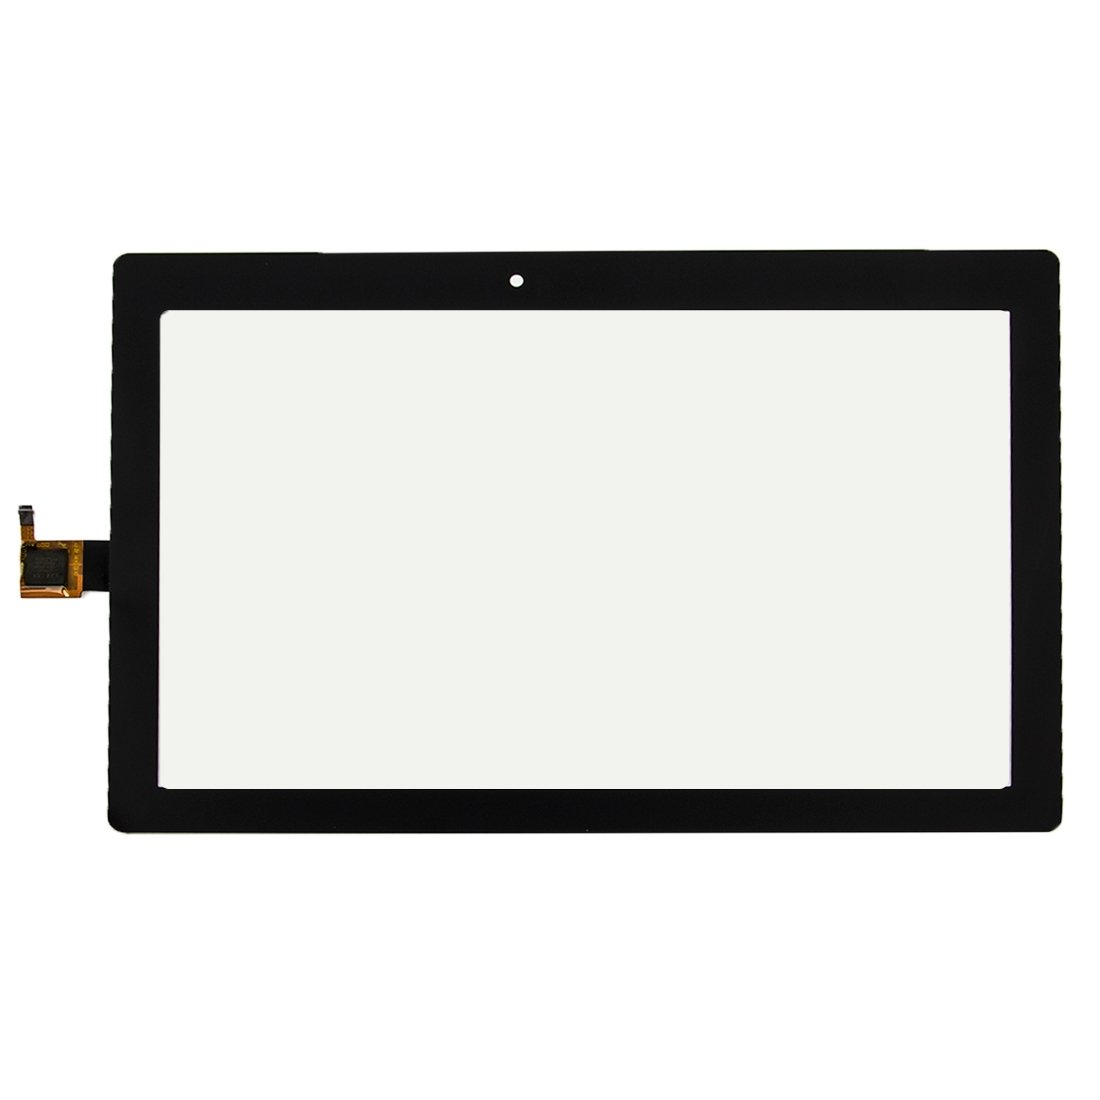 LIYE for Lenovo Tab 2 A10-30 X30F Touch Panel(Black) (Color : Black) by LIYE